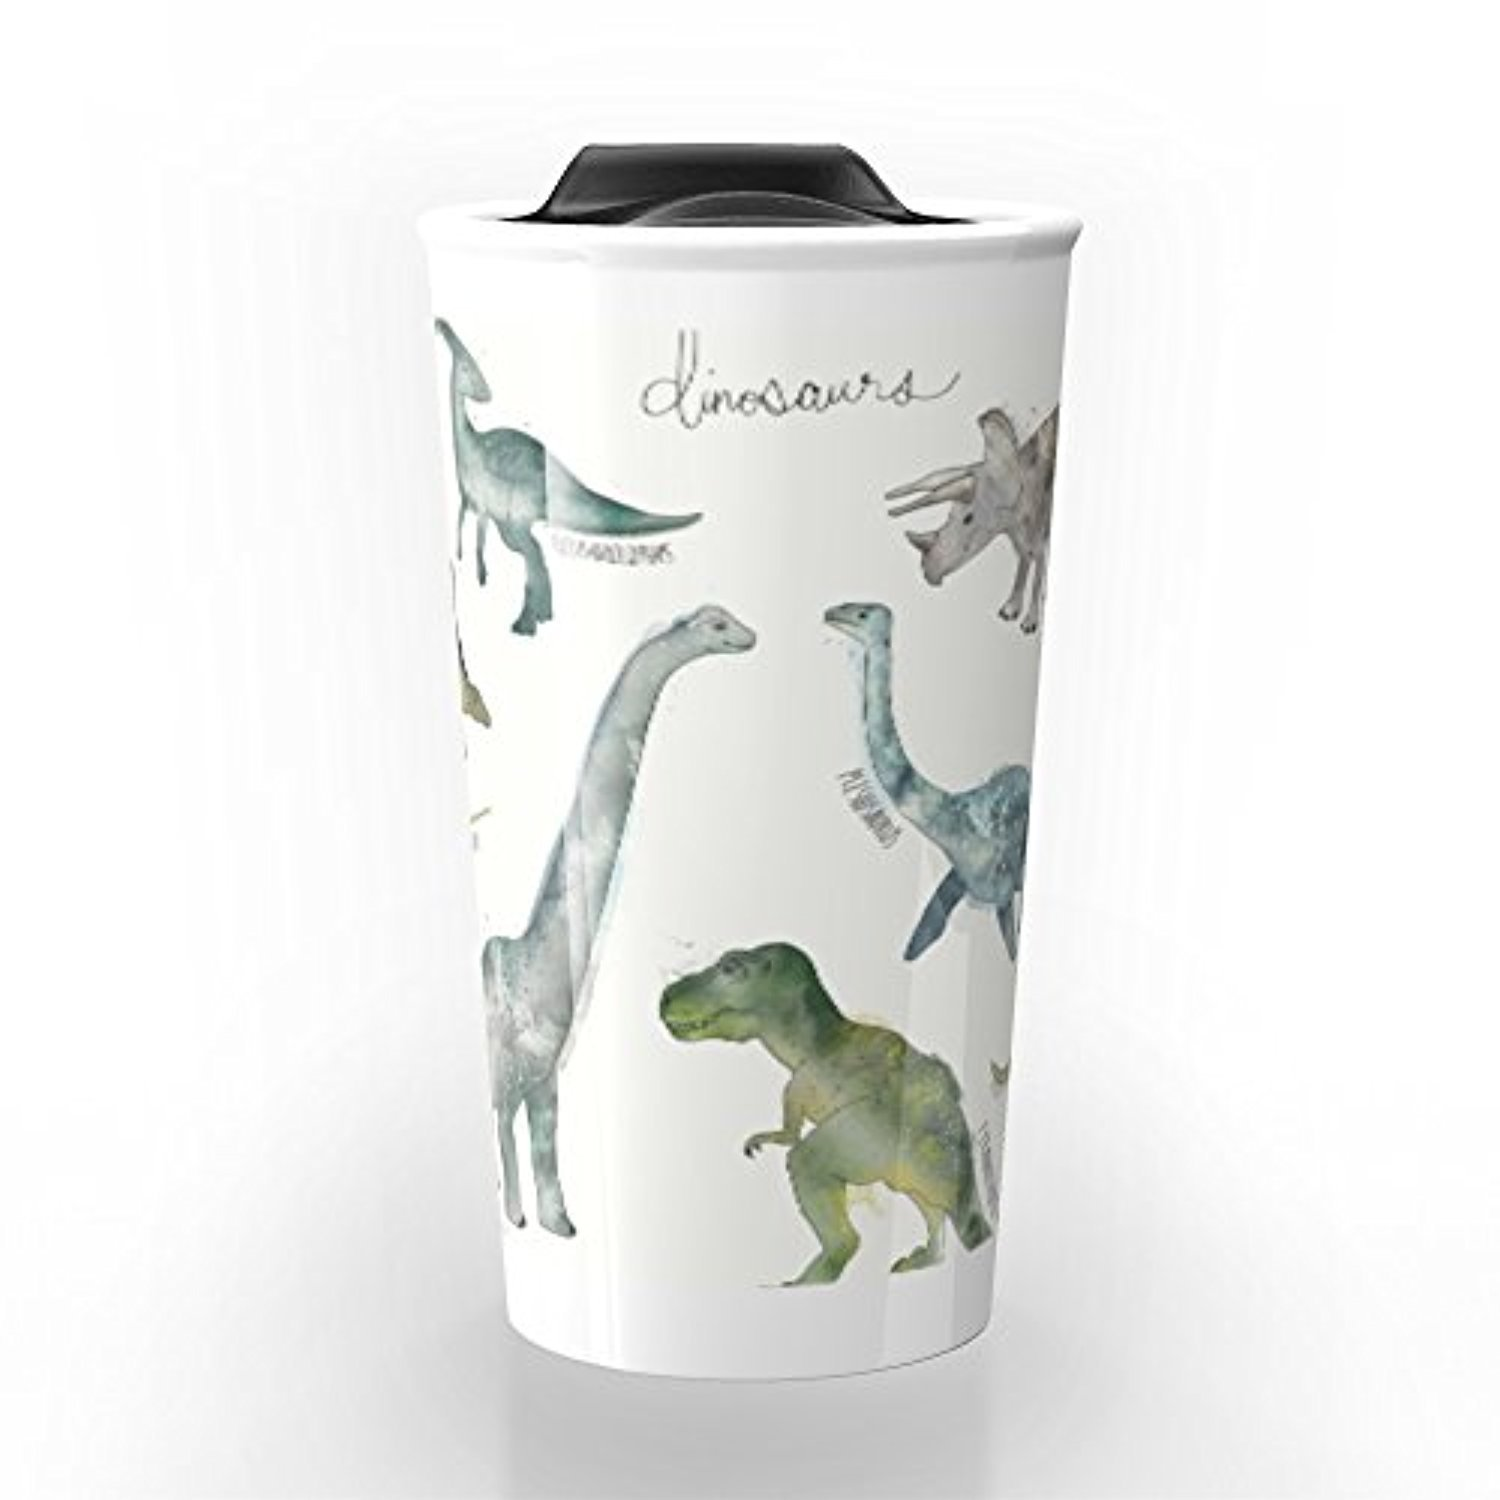 ◎送料込み◎ Society6 Dinosaurs Travel Mug 12 oz